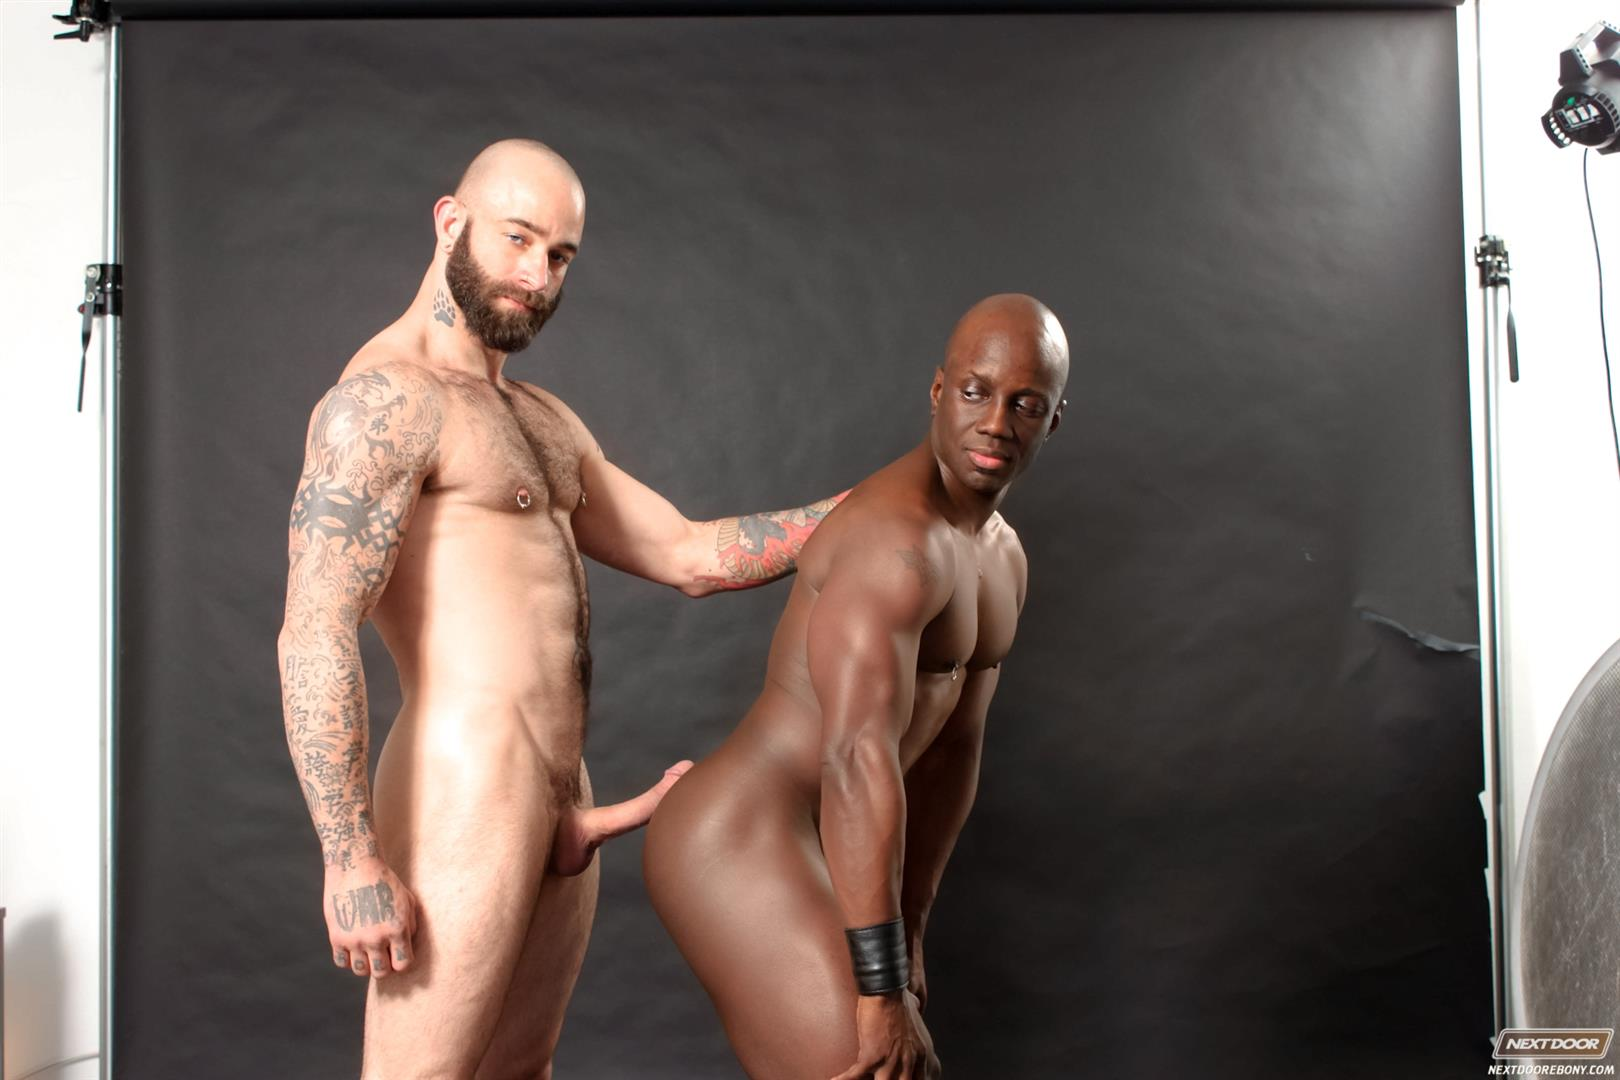 Next Door Ebony Sam Swift and Jay Black Interracial White Guy Fucking A Black Guy Amateur Gay Porn 15 Hung Amateur Black Guy Takes A Big White Cock Up His Tight Ass